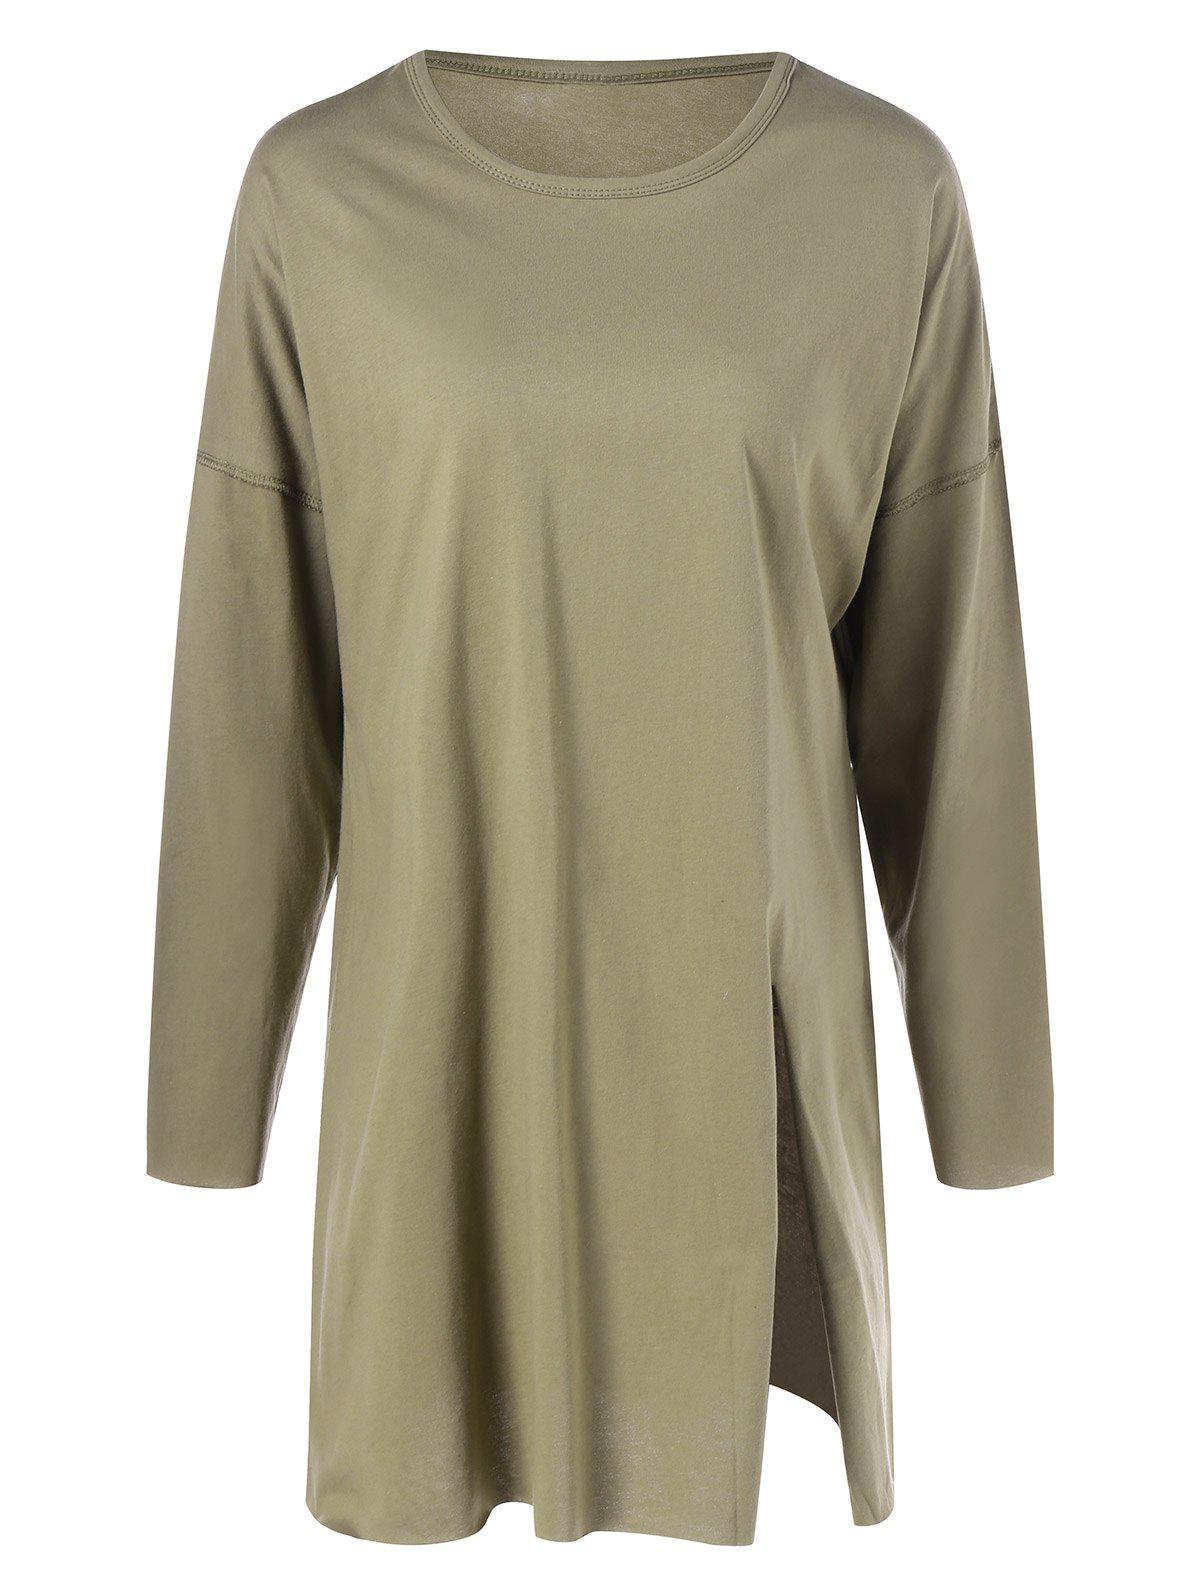 Long Sleeve Plus Size Split T Shirt - ARMY GREEN XL